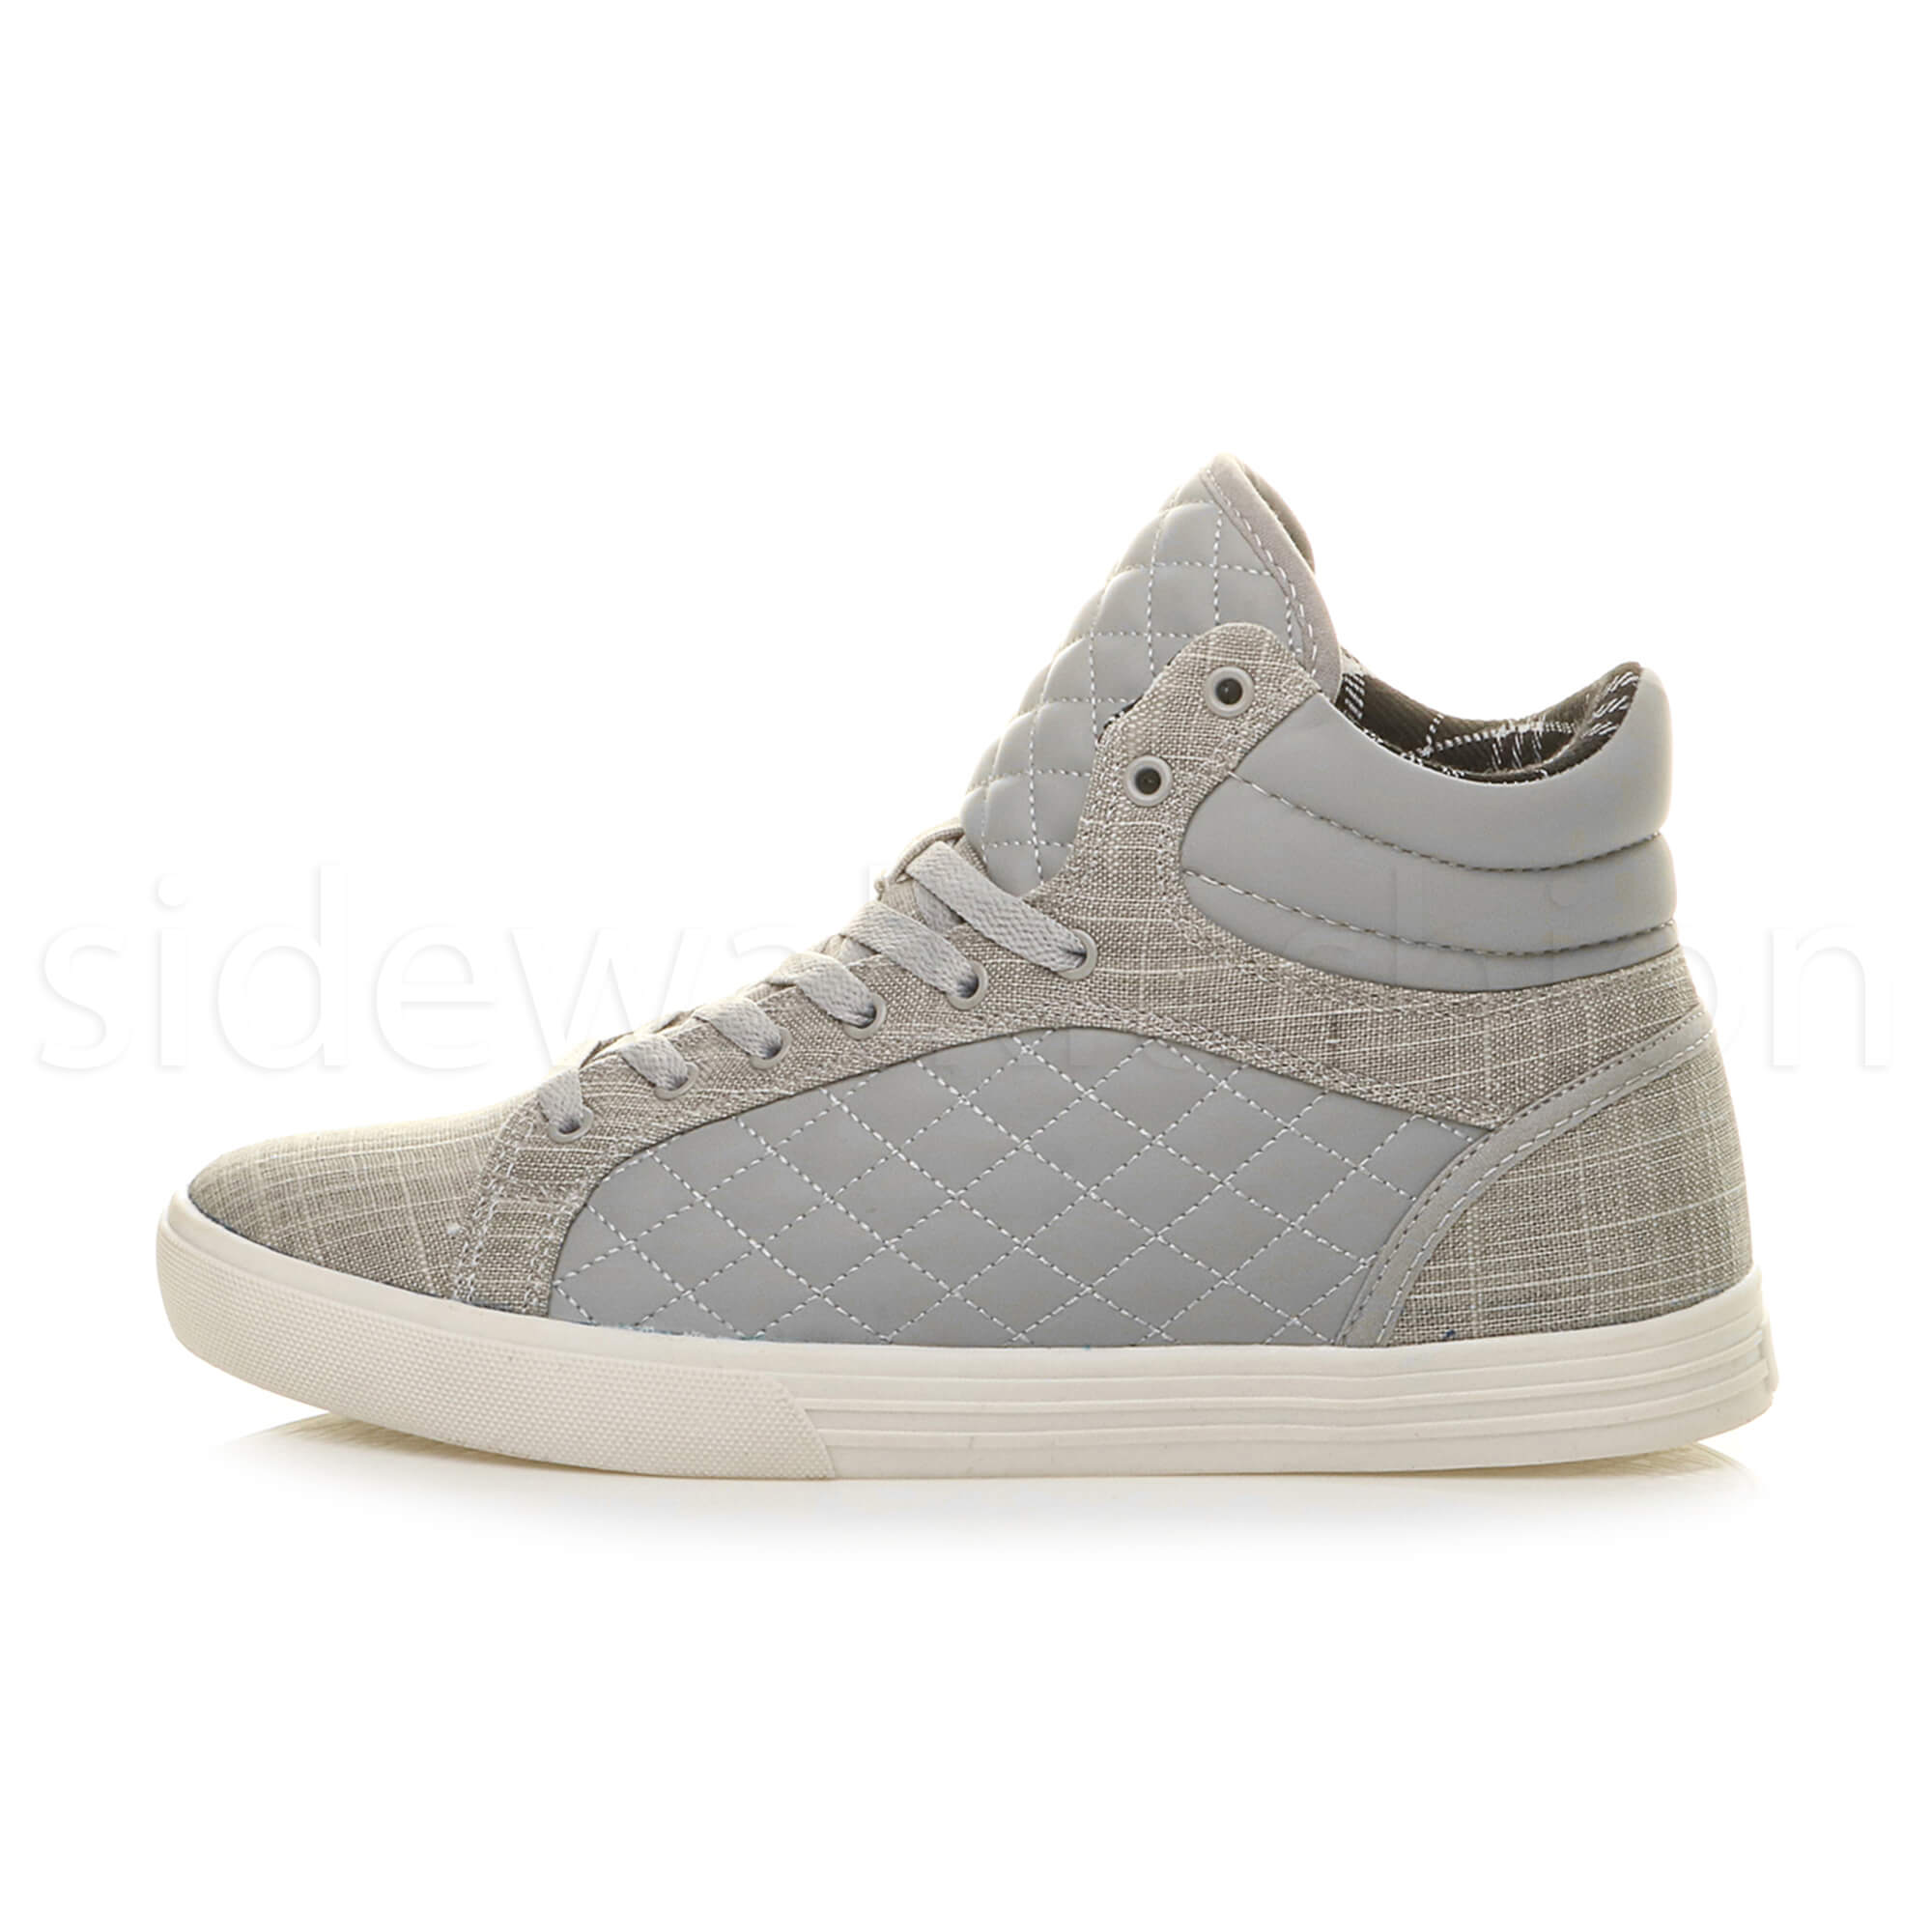 Mens-flat-lace-up-quilted-casual-hi-high-top-ankle-boots-trainers-sneakers-size thumbnail 17